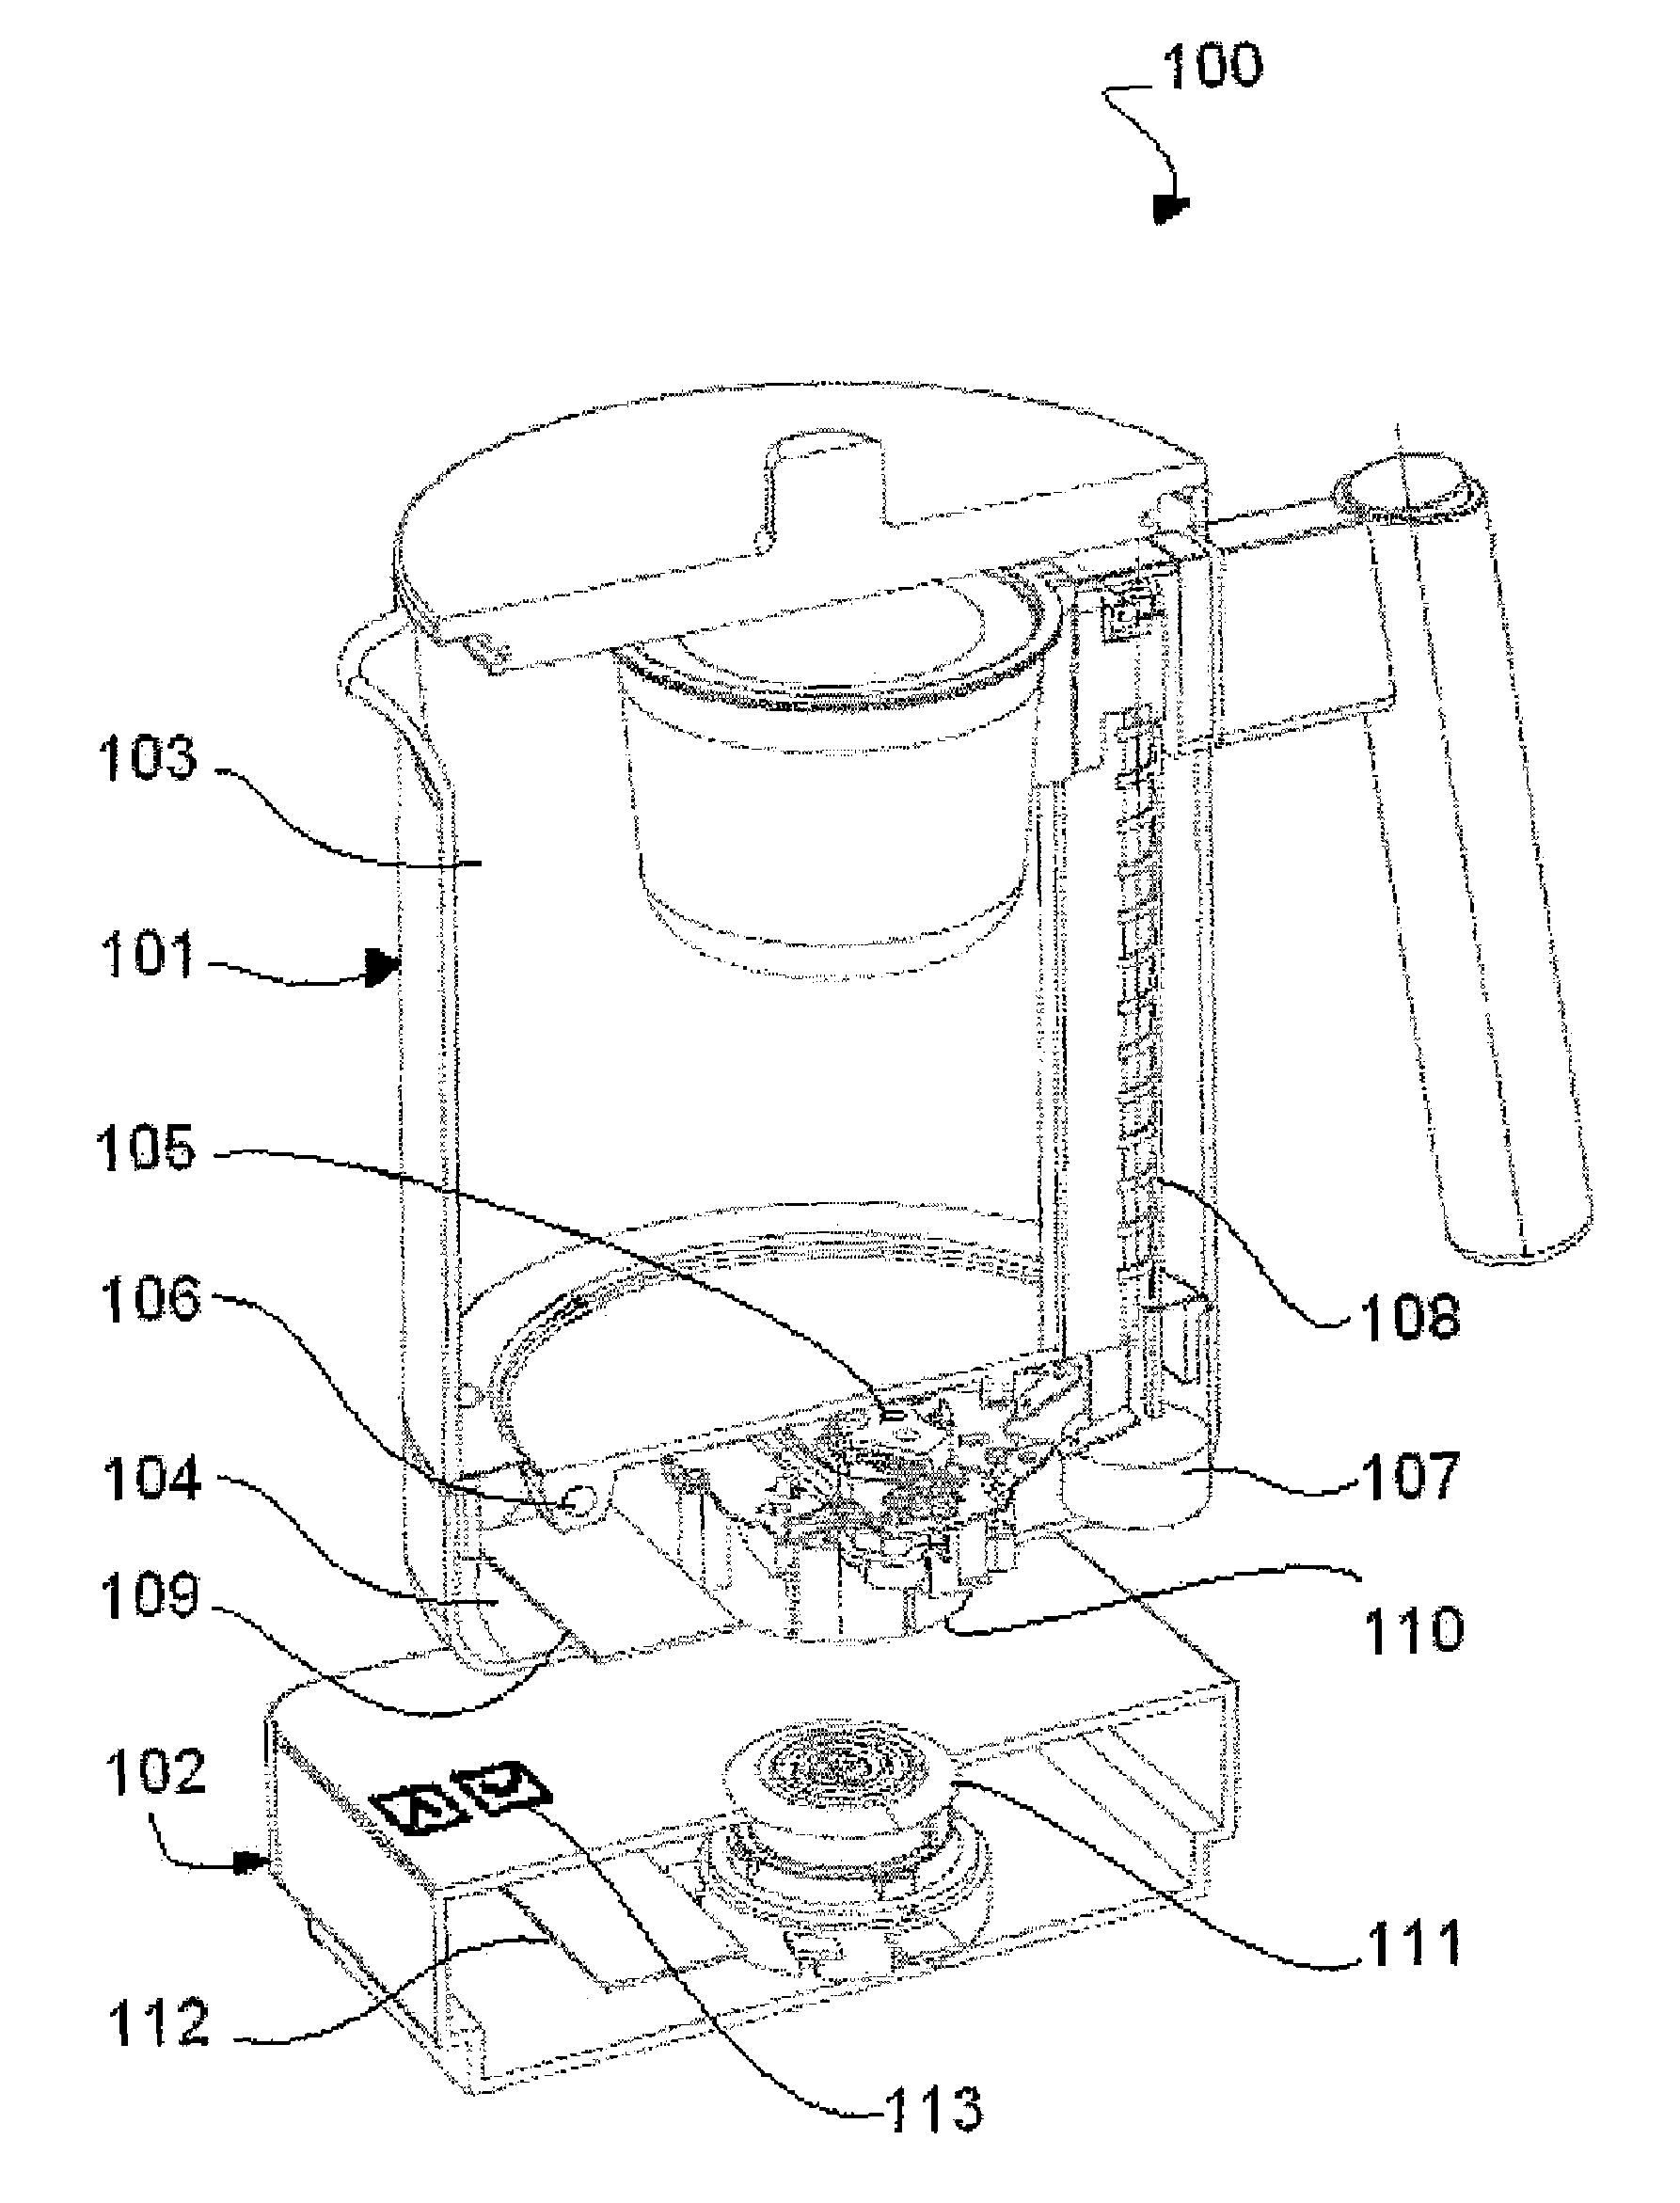 Kettle Plug Wiring Diagram : Patent us cordless kettle with data communication